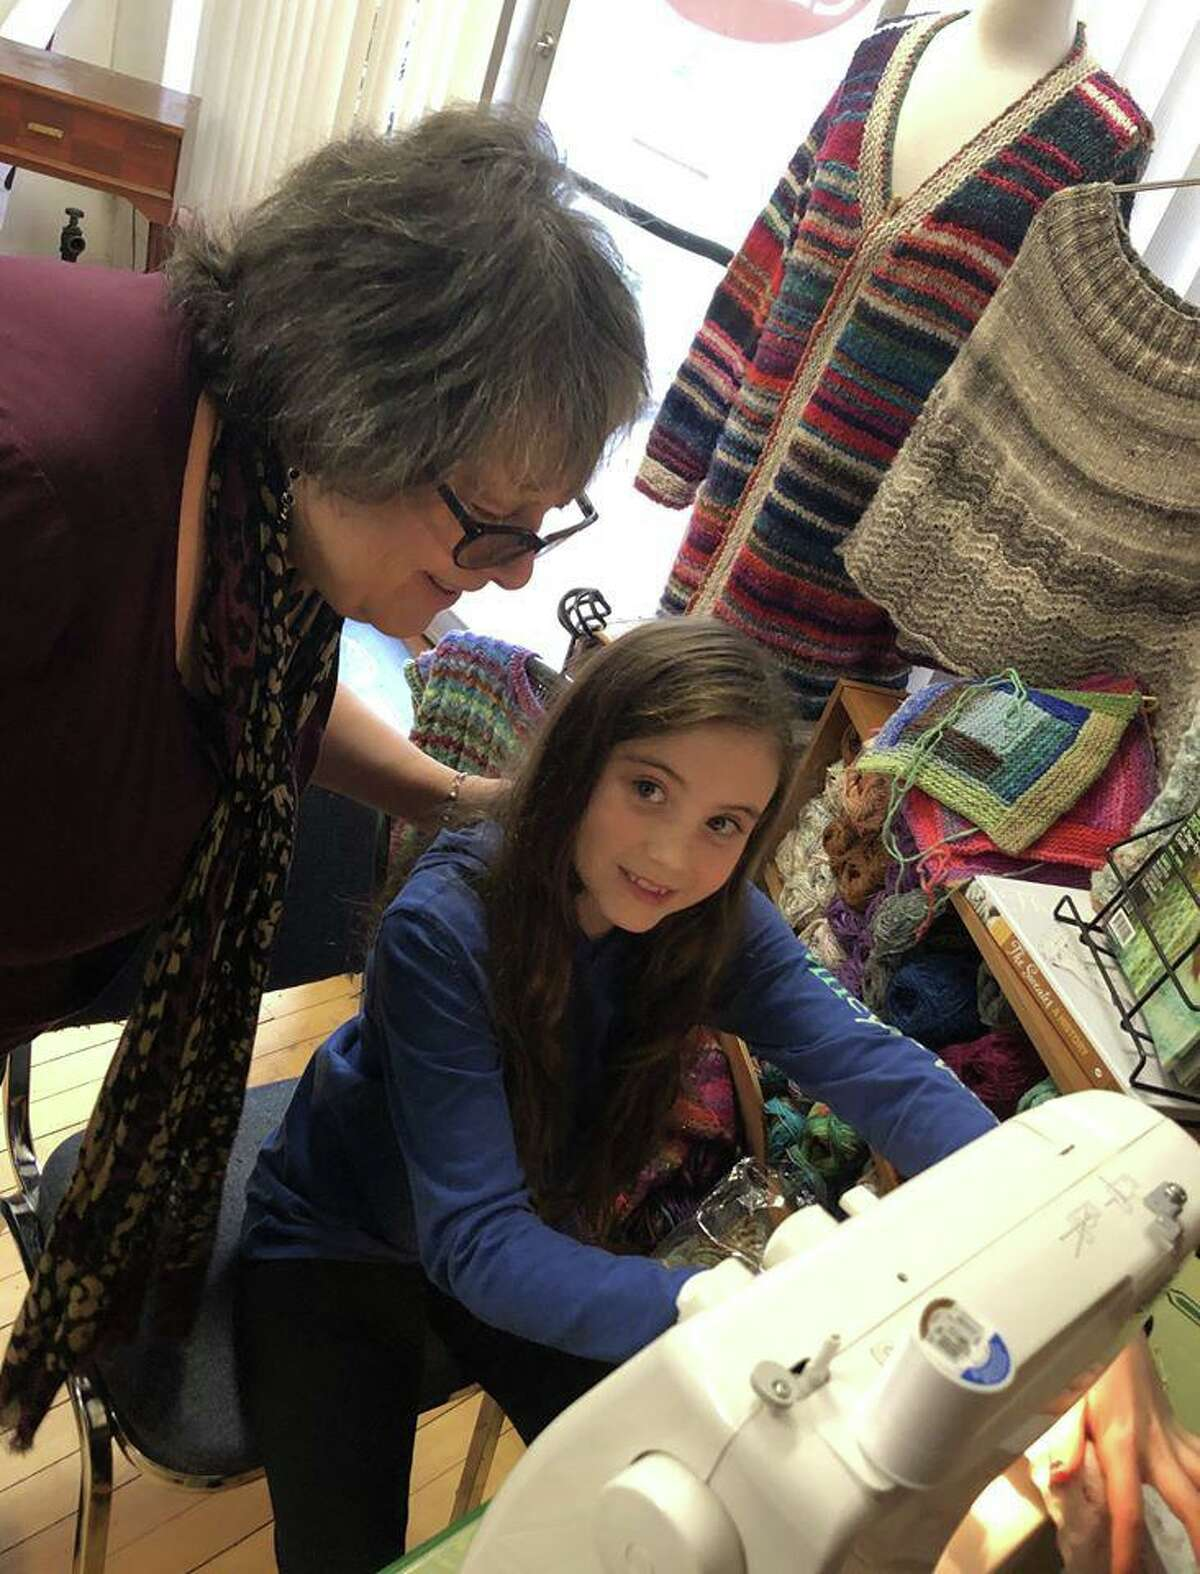 In Sheep's Clothing owner Ginger Balch hosted a sewing workshop at her store on Water Street in Torrington Saturday. The gathering of knitters, crocheters and sewers made